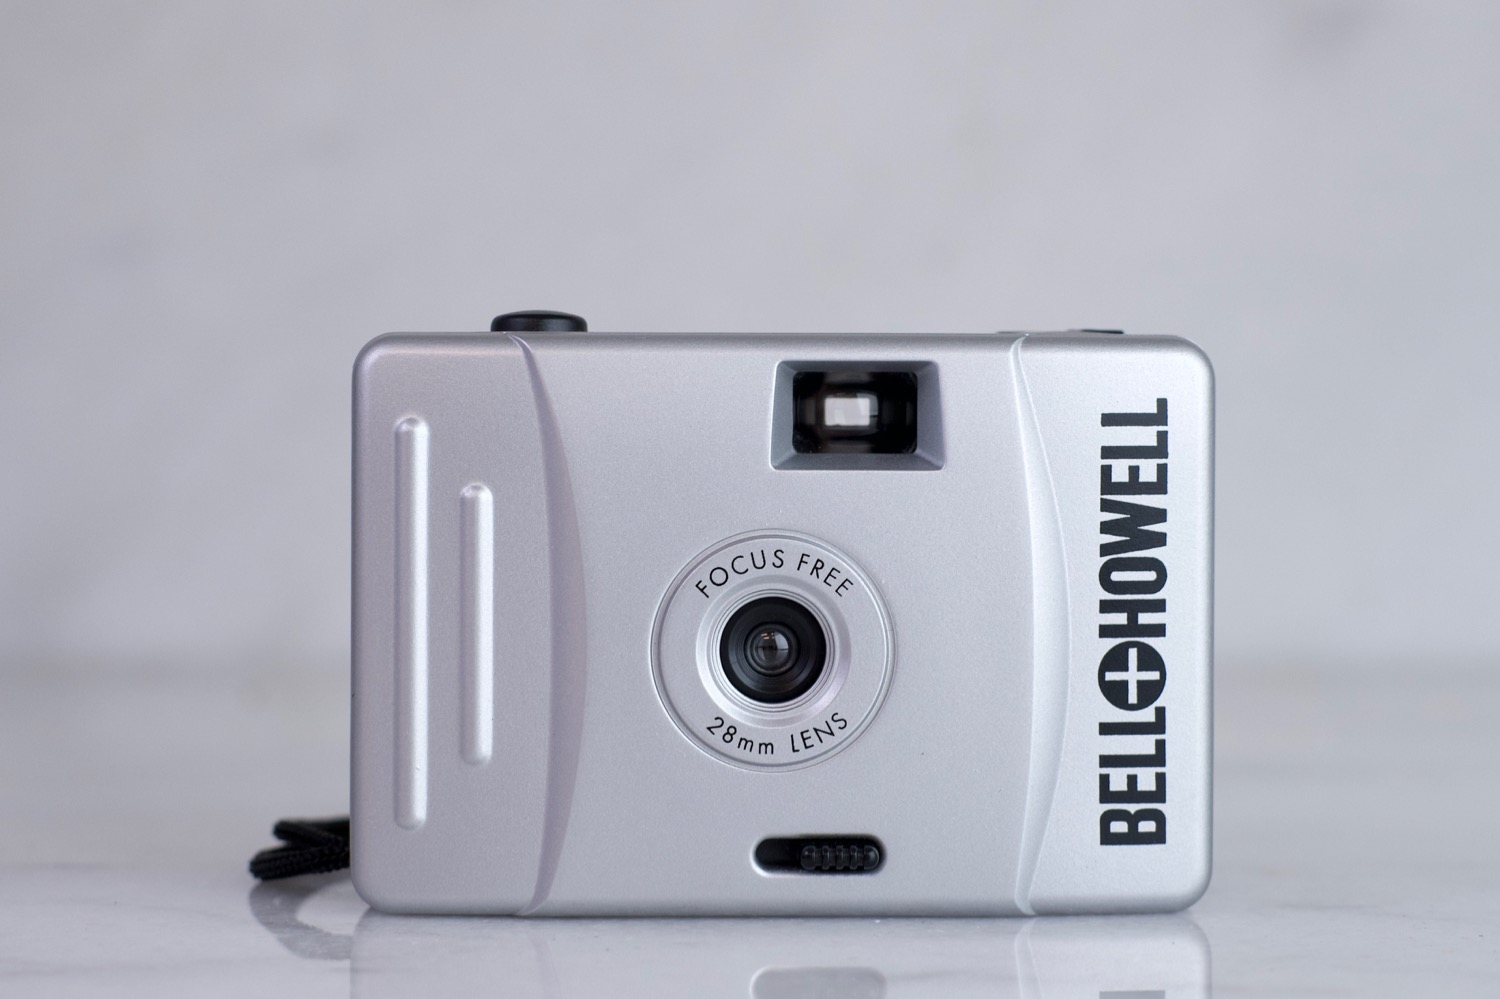 Bell & Howell Focus Free 35mm Point and Shoot Camera